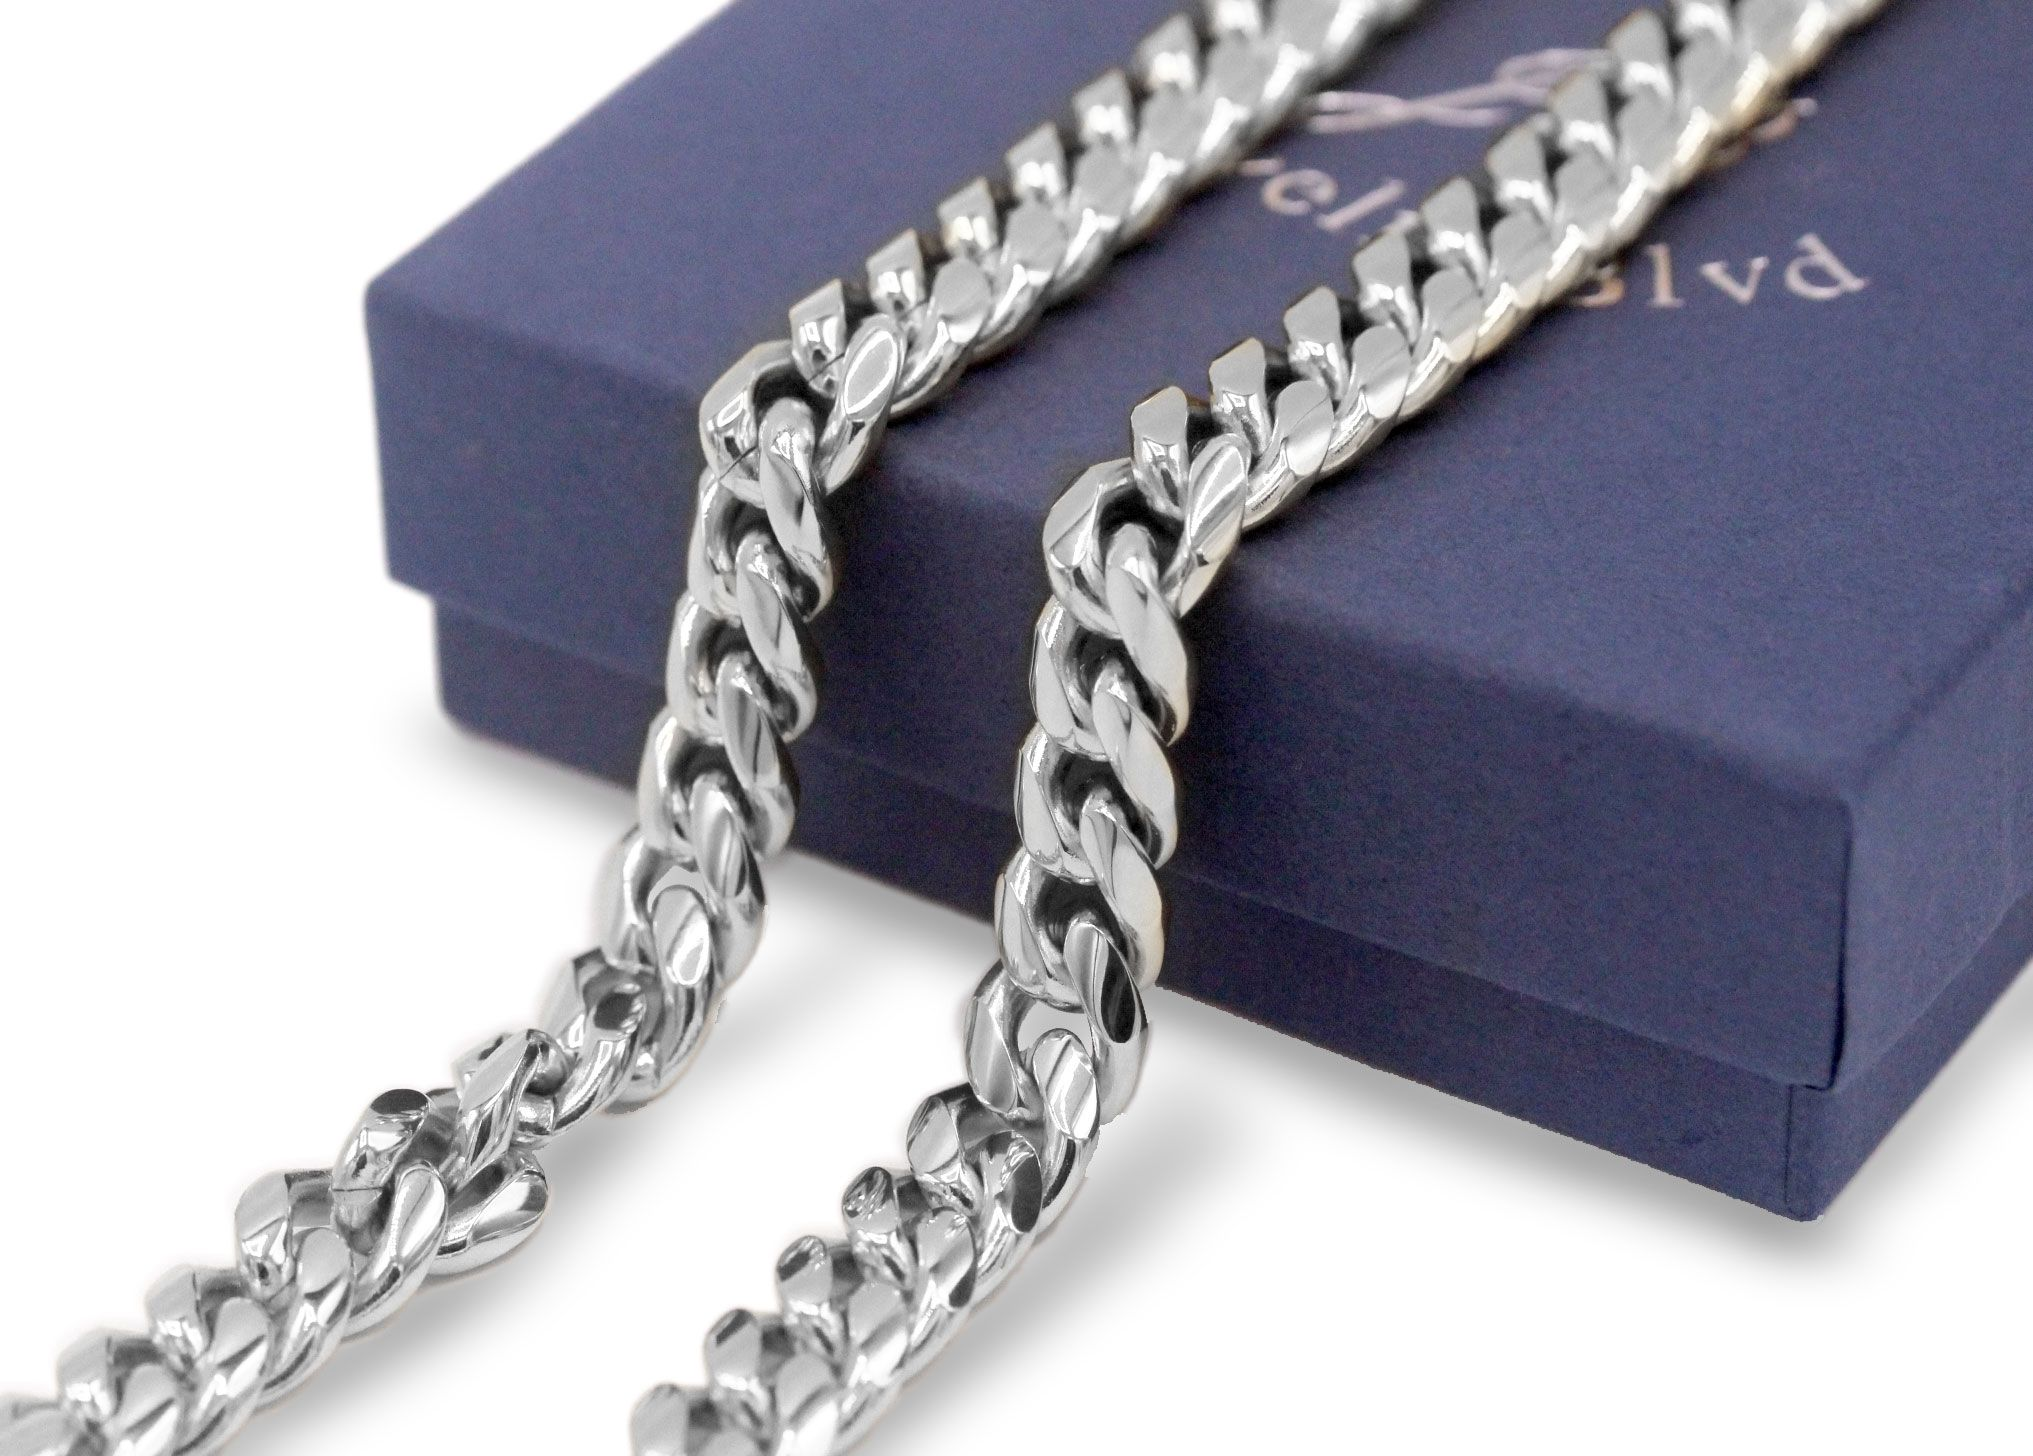 stones chain stock valuable chains expensive precious stone bucherer photo jewellery collier diamond diamonds sapphires